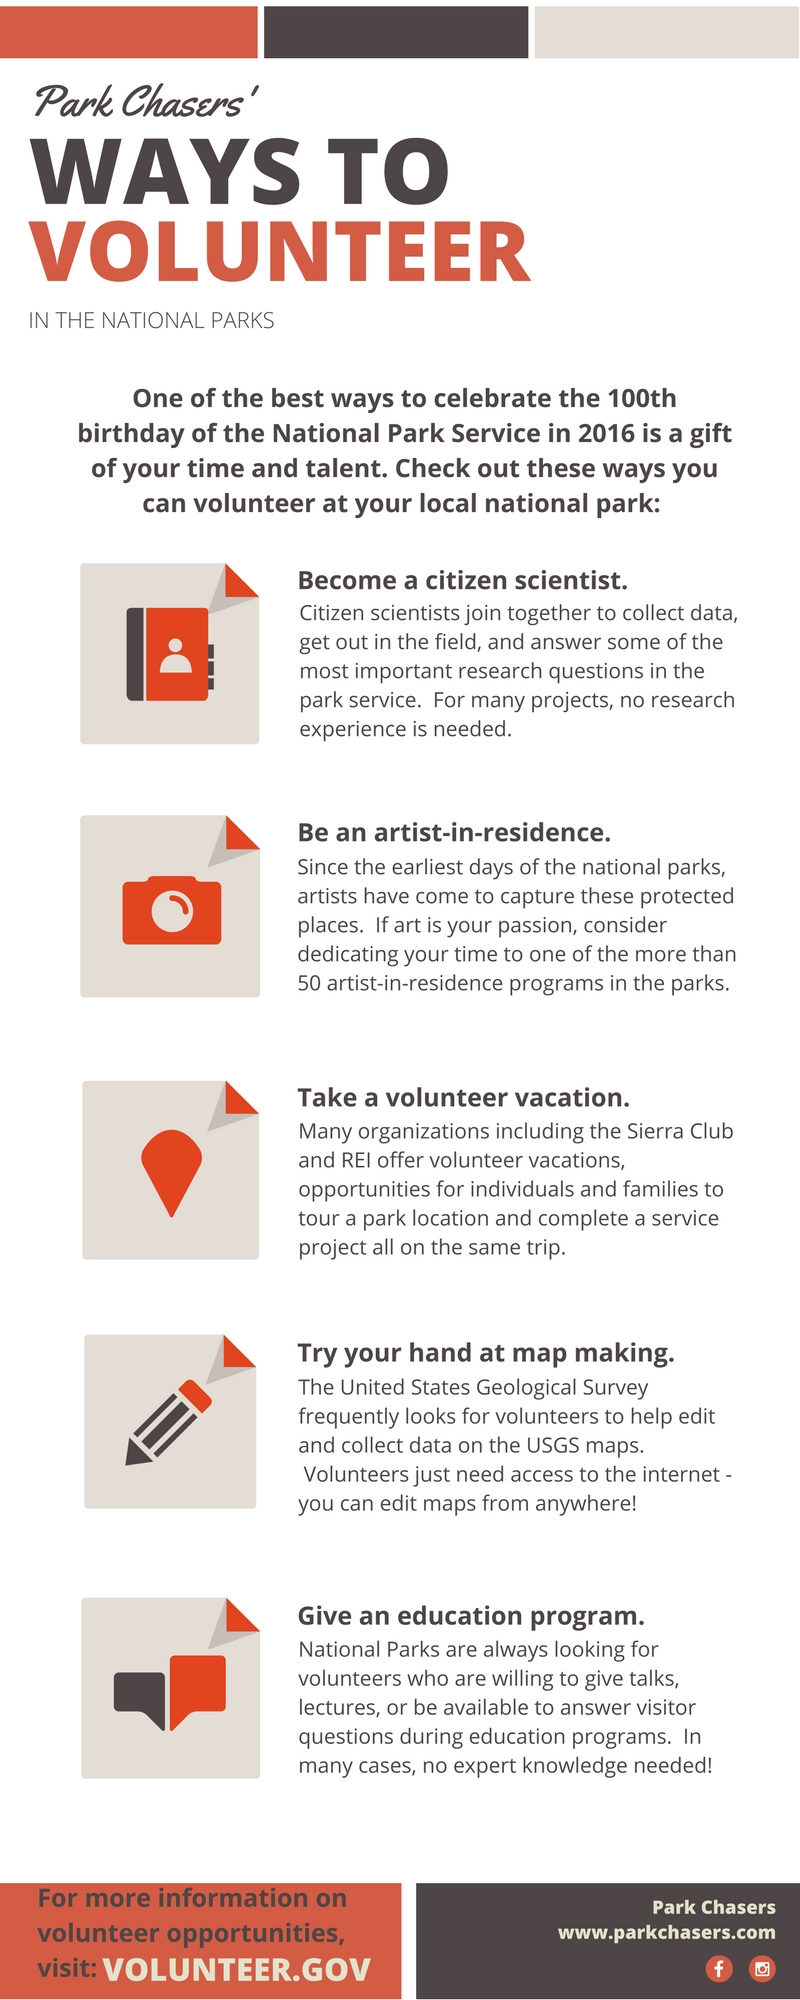 Ways to Volunteer in the National Parks